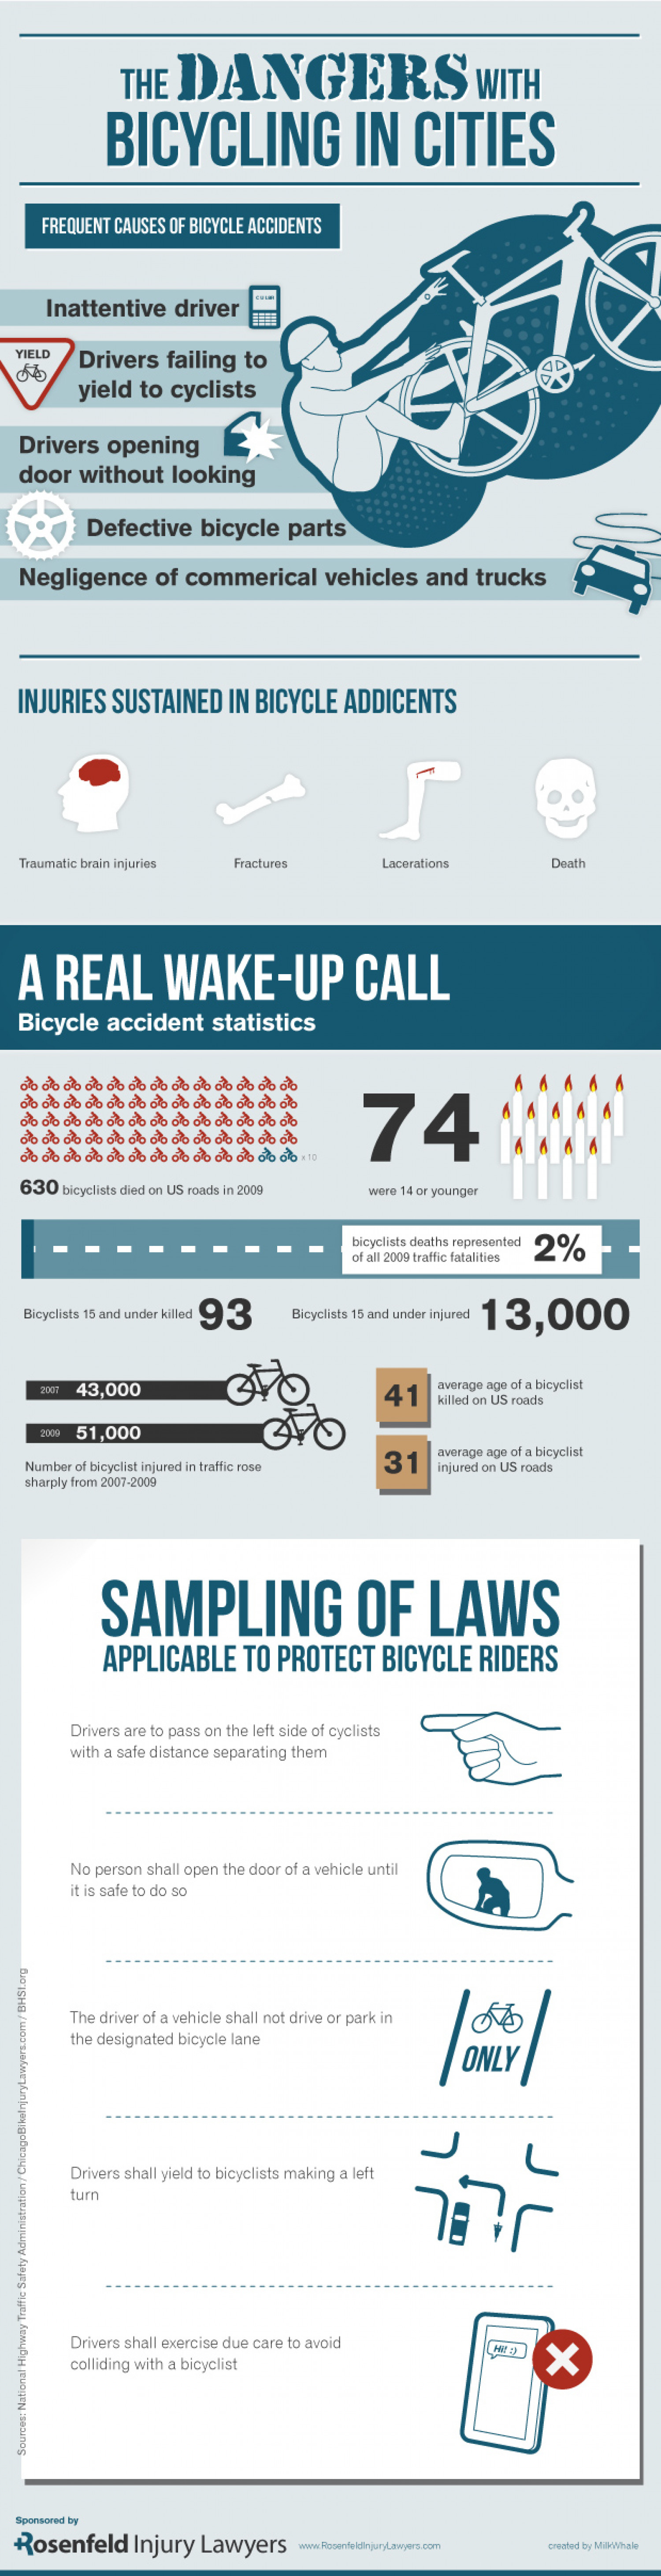 Chicago Bike Injury Lawyers Present Infographic Of Dangers Related To Bicycling In The City Infographic